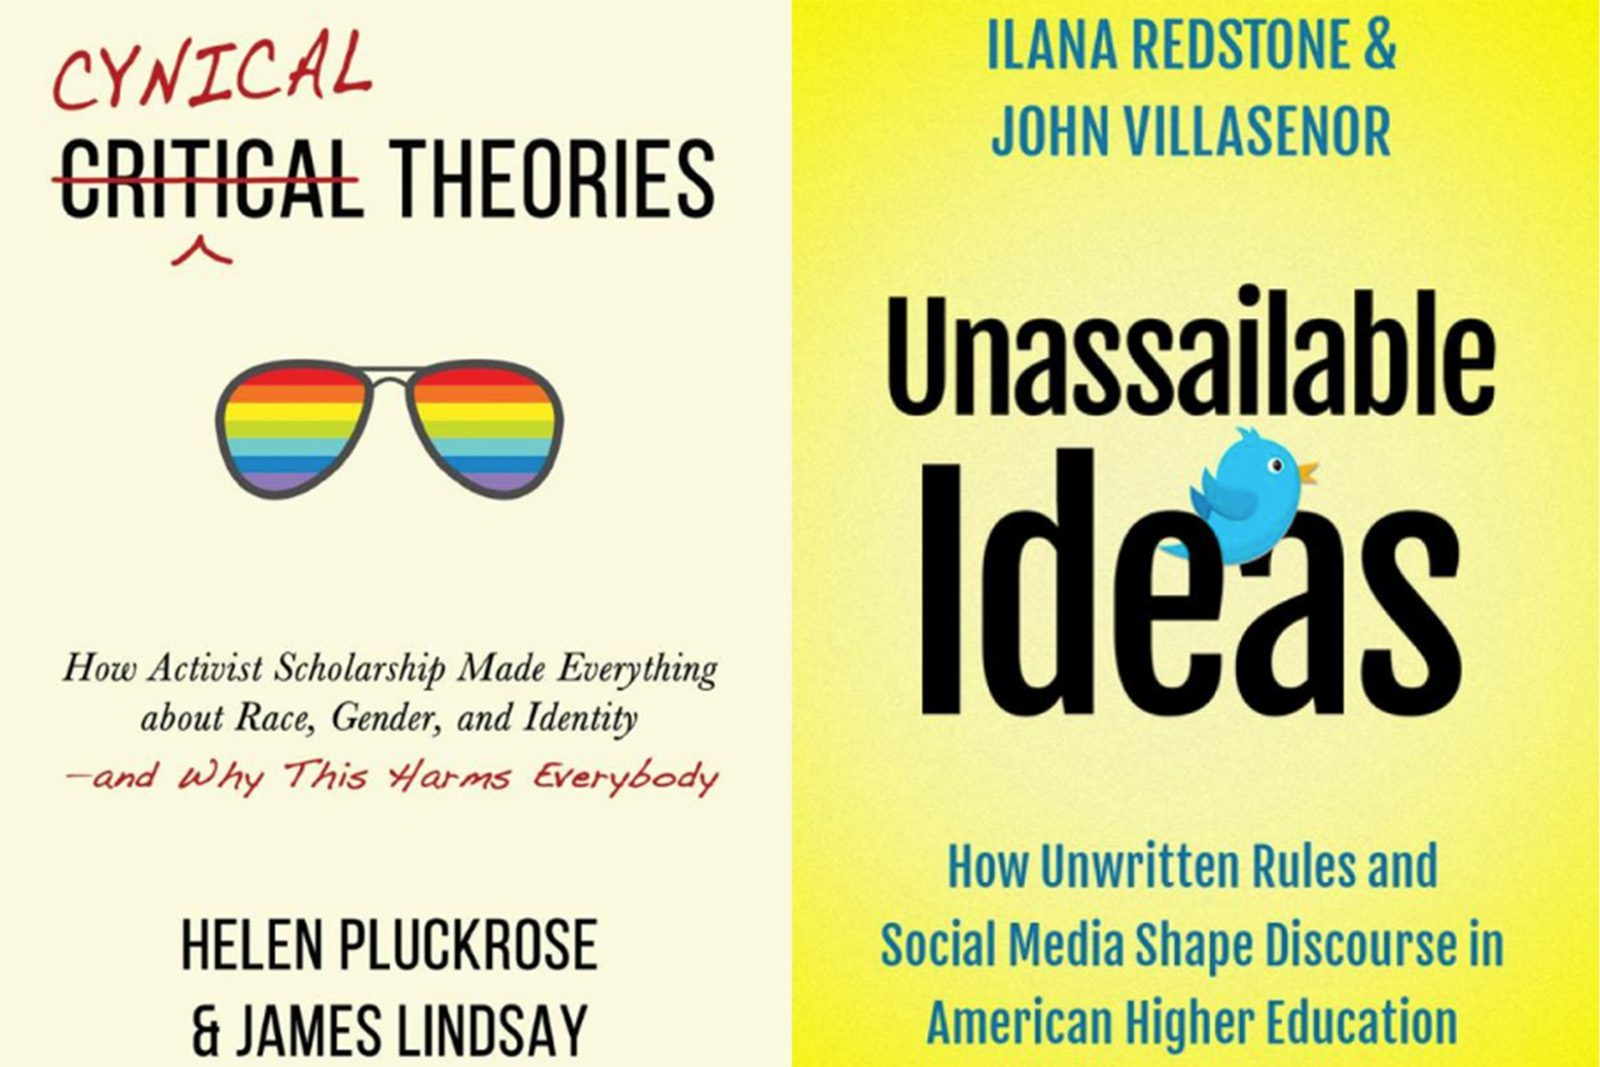 """""""Cynical Theories,"""" by Helen Pluckrose and James Lindsay (left), and """"Unassailable Ideas,"""" by Ilana Redstone and John Villasenor (right)"""